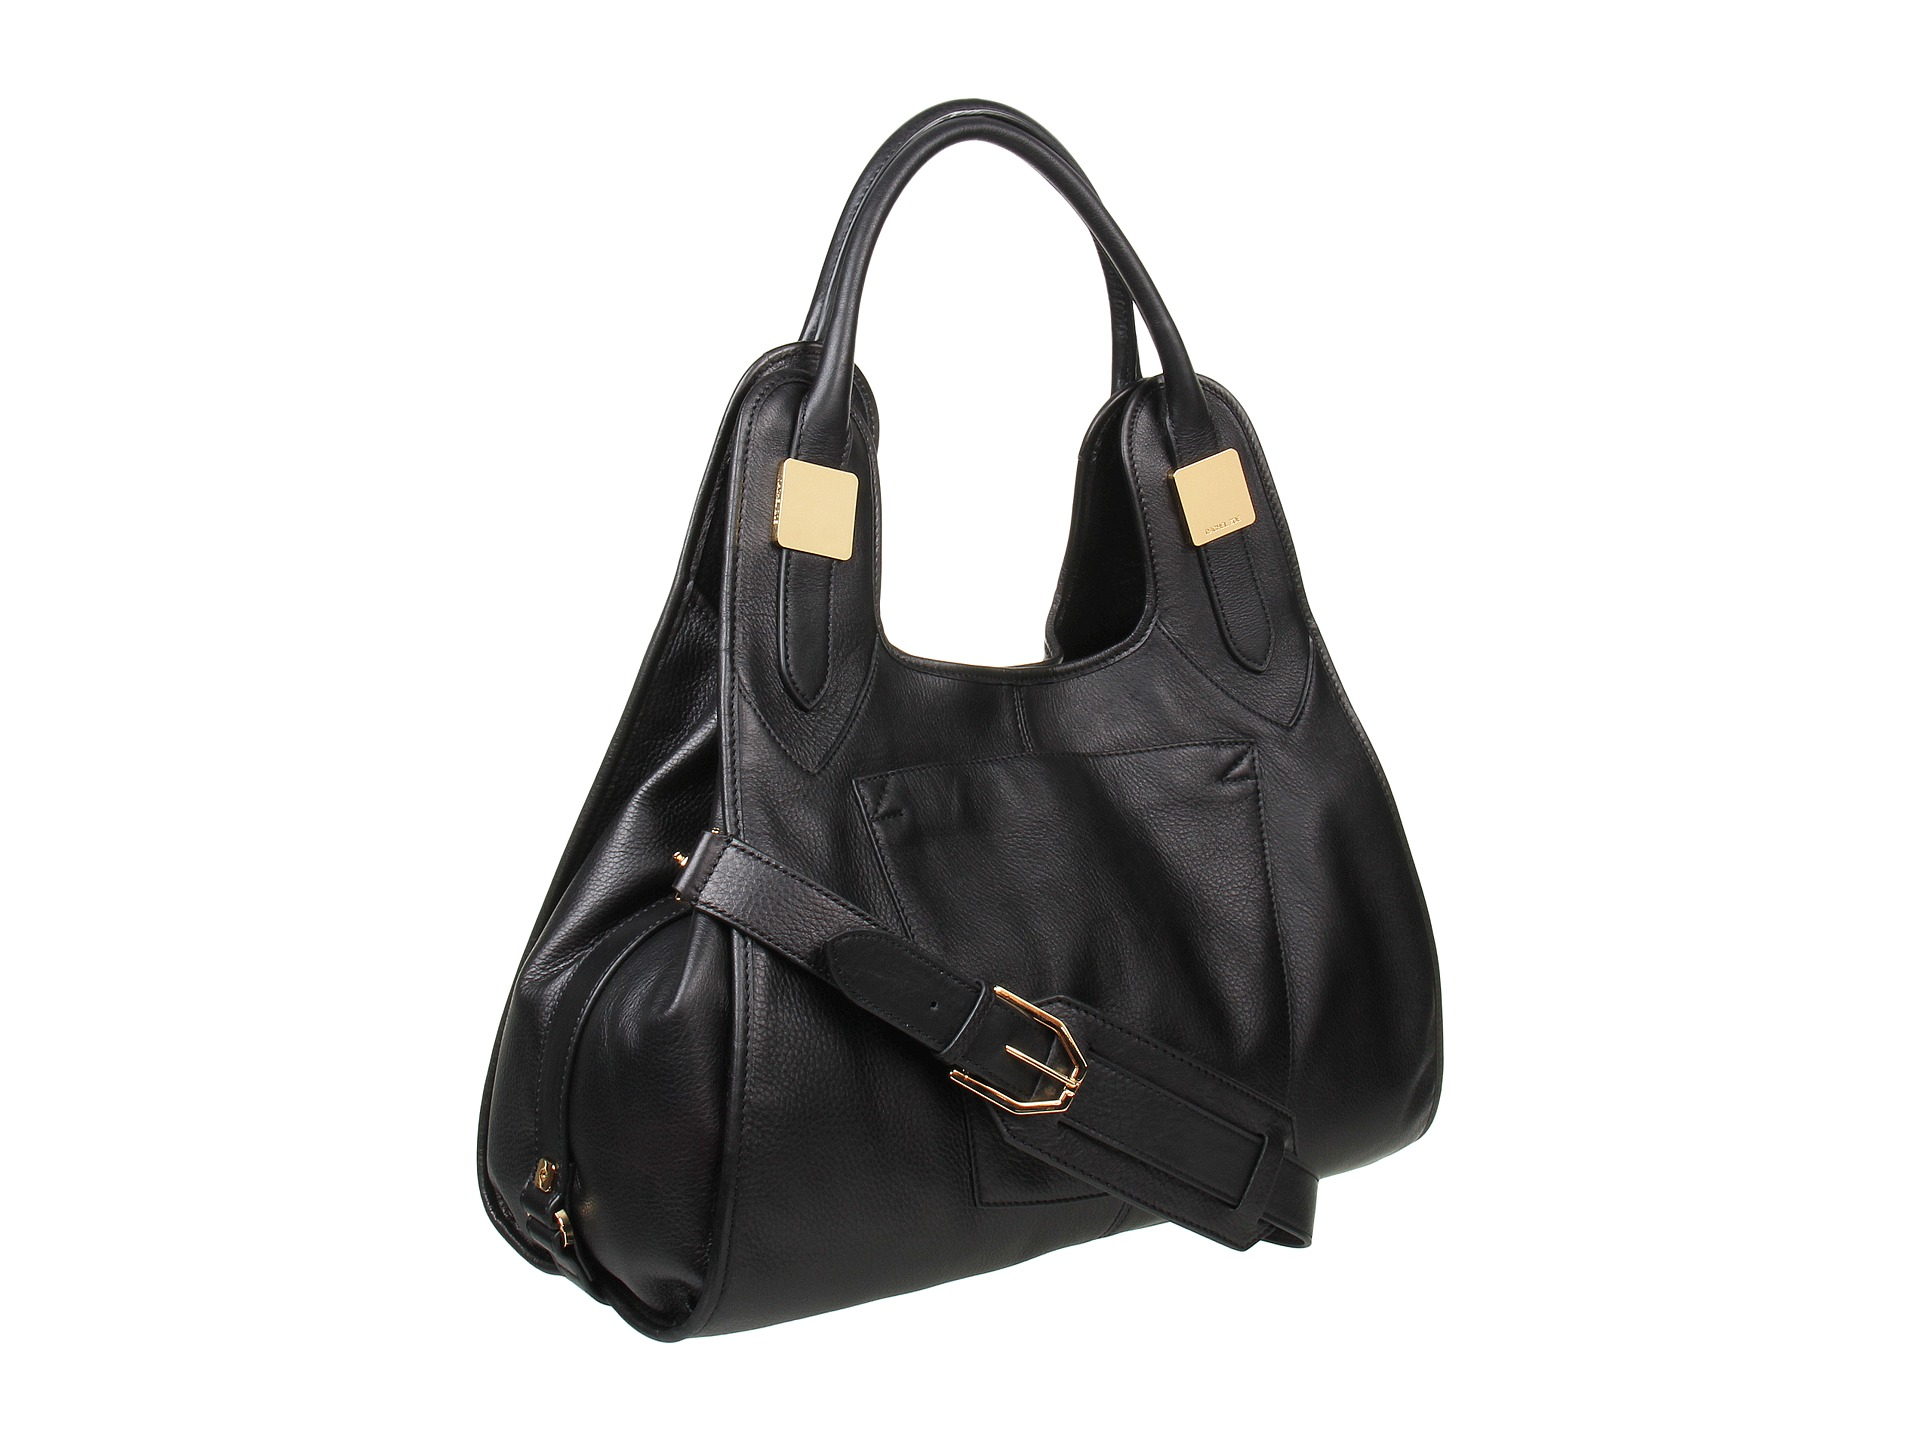 695.00 Kate Spade New York Cobble Hill Penny $345.00